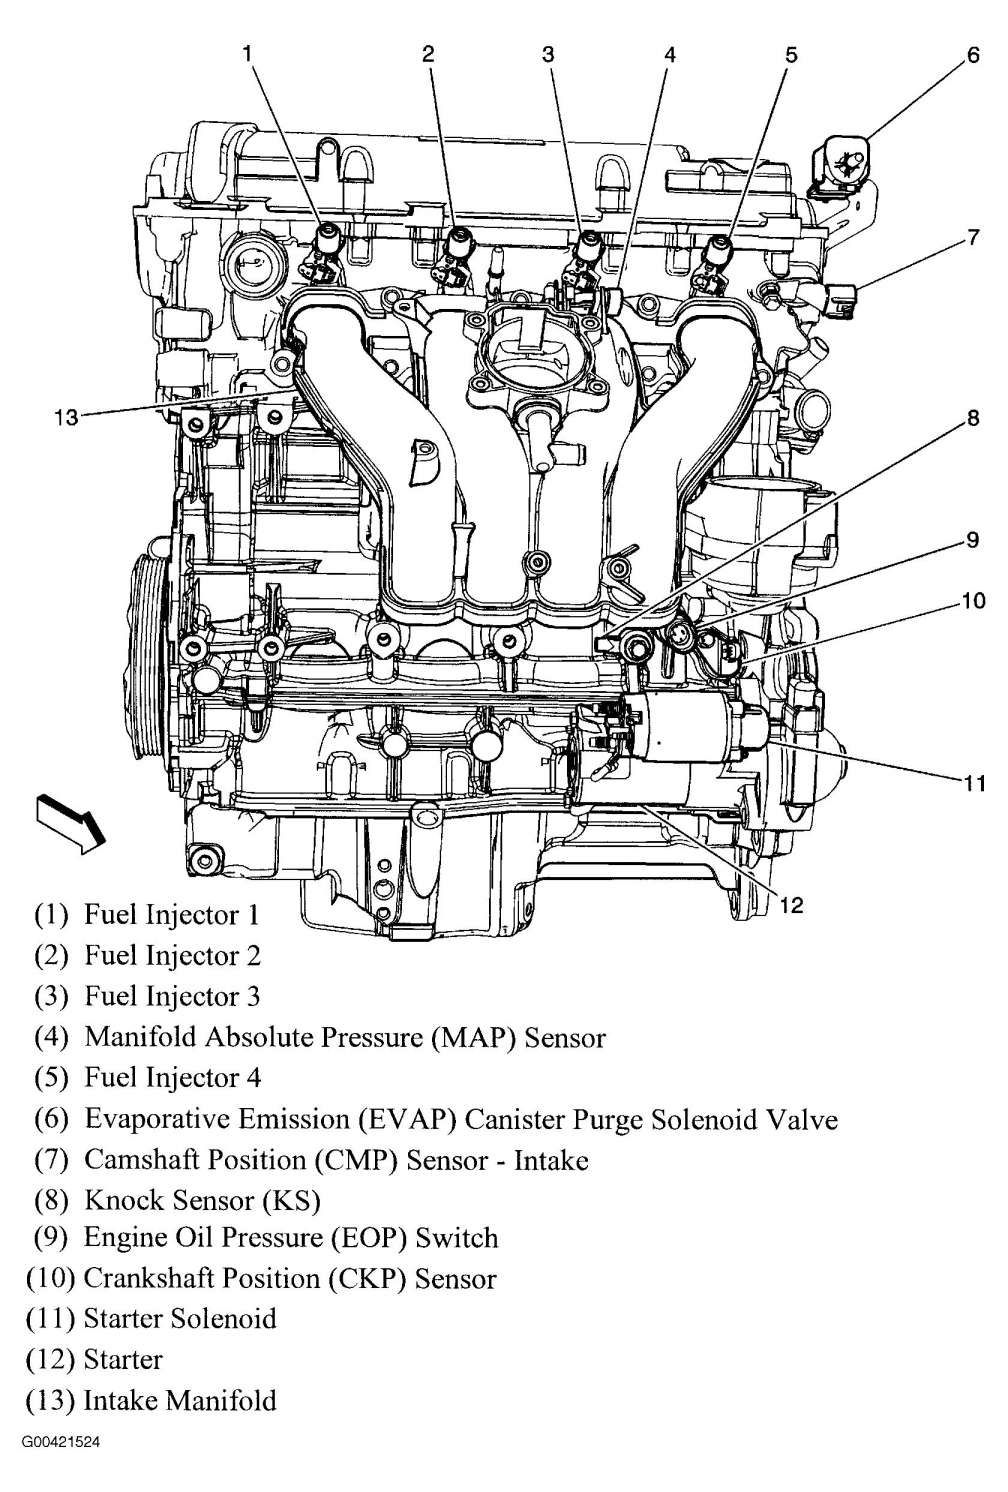 chevy 2 8 engine diagram | evening-recommen wiring diagram number -  evening-recommen.garbobar.it  garbo bar